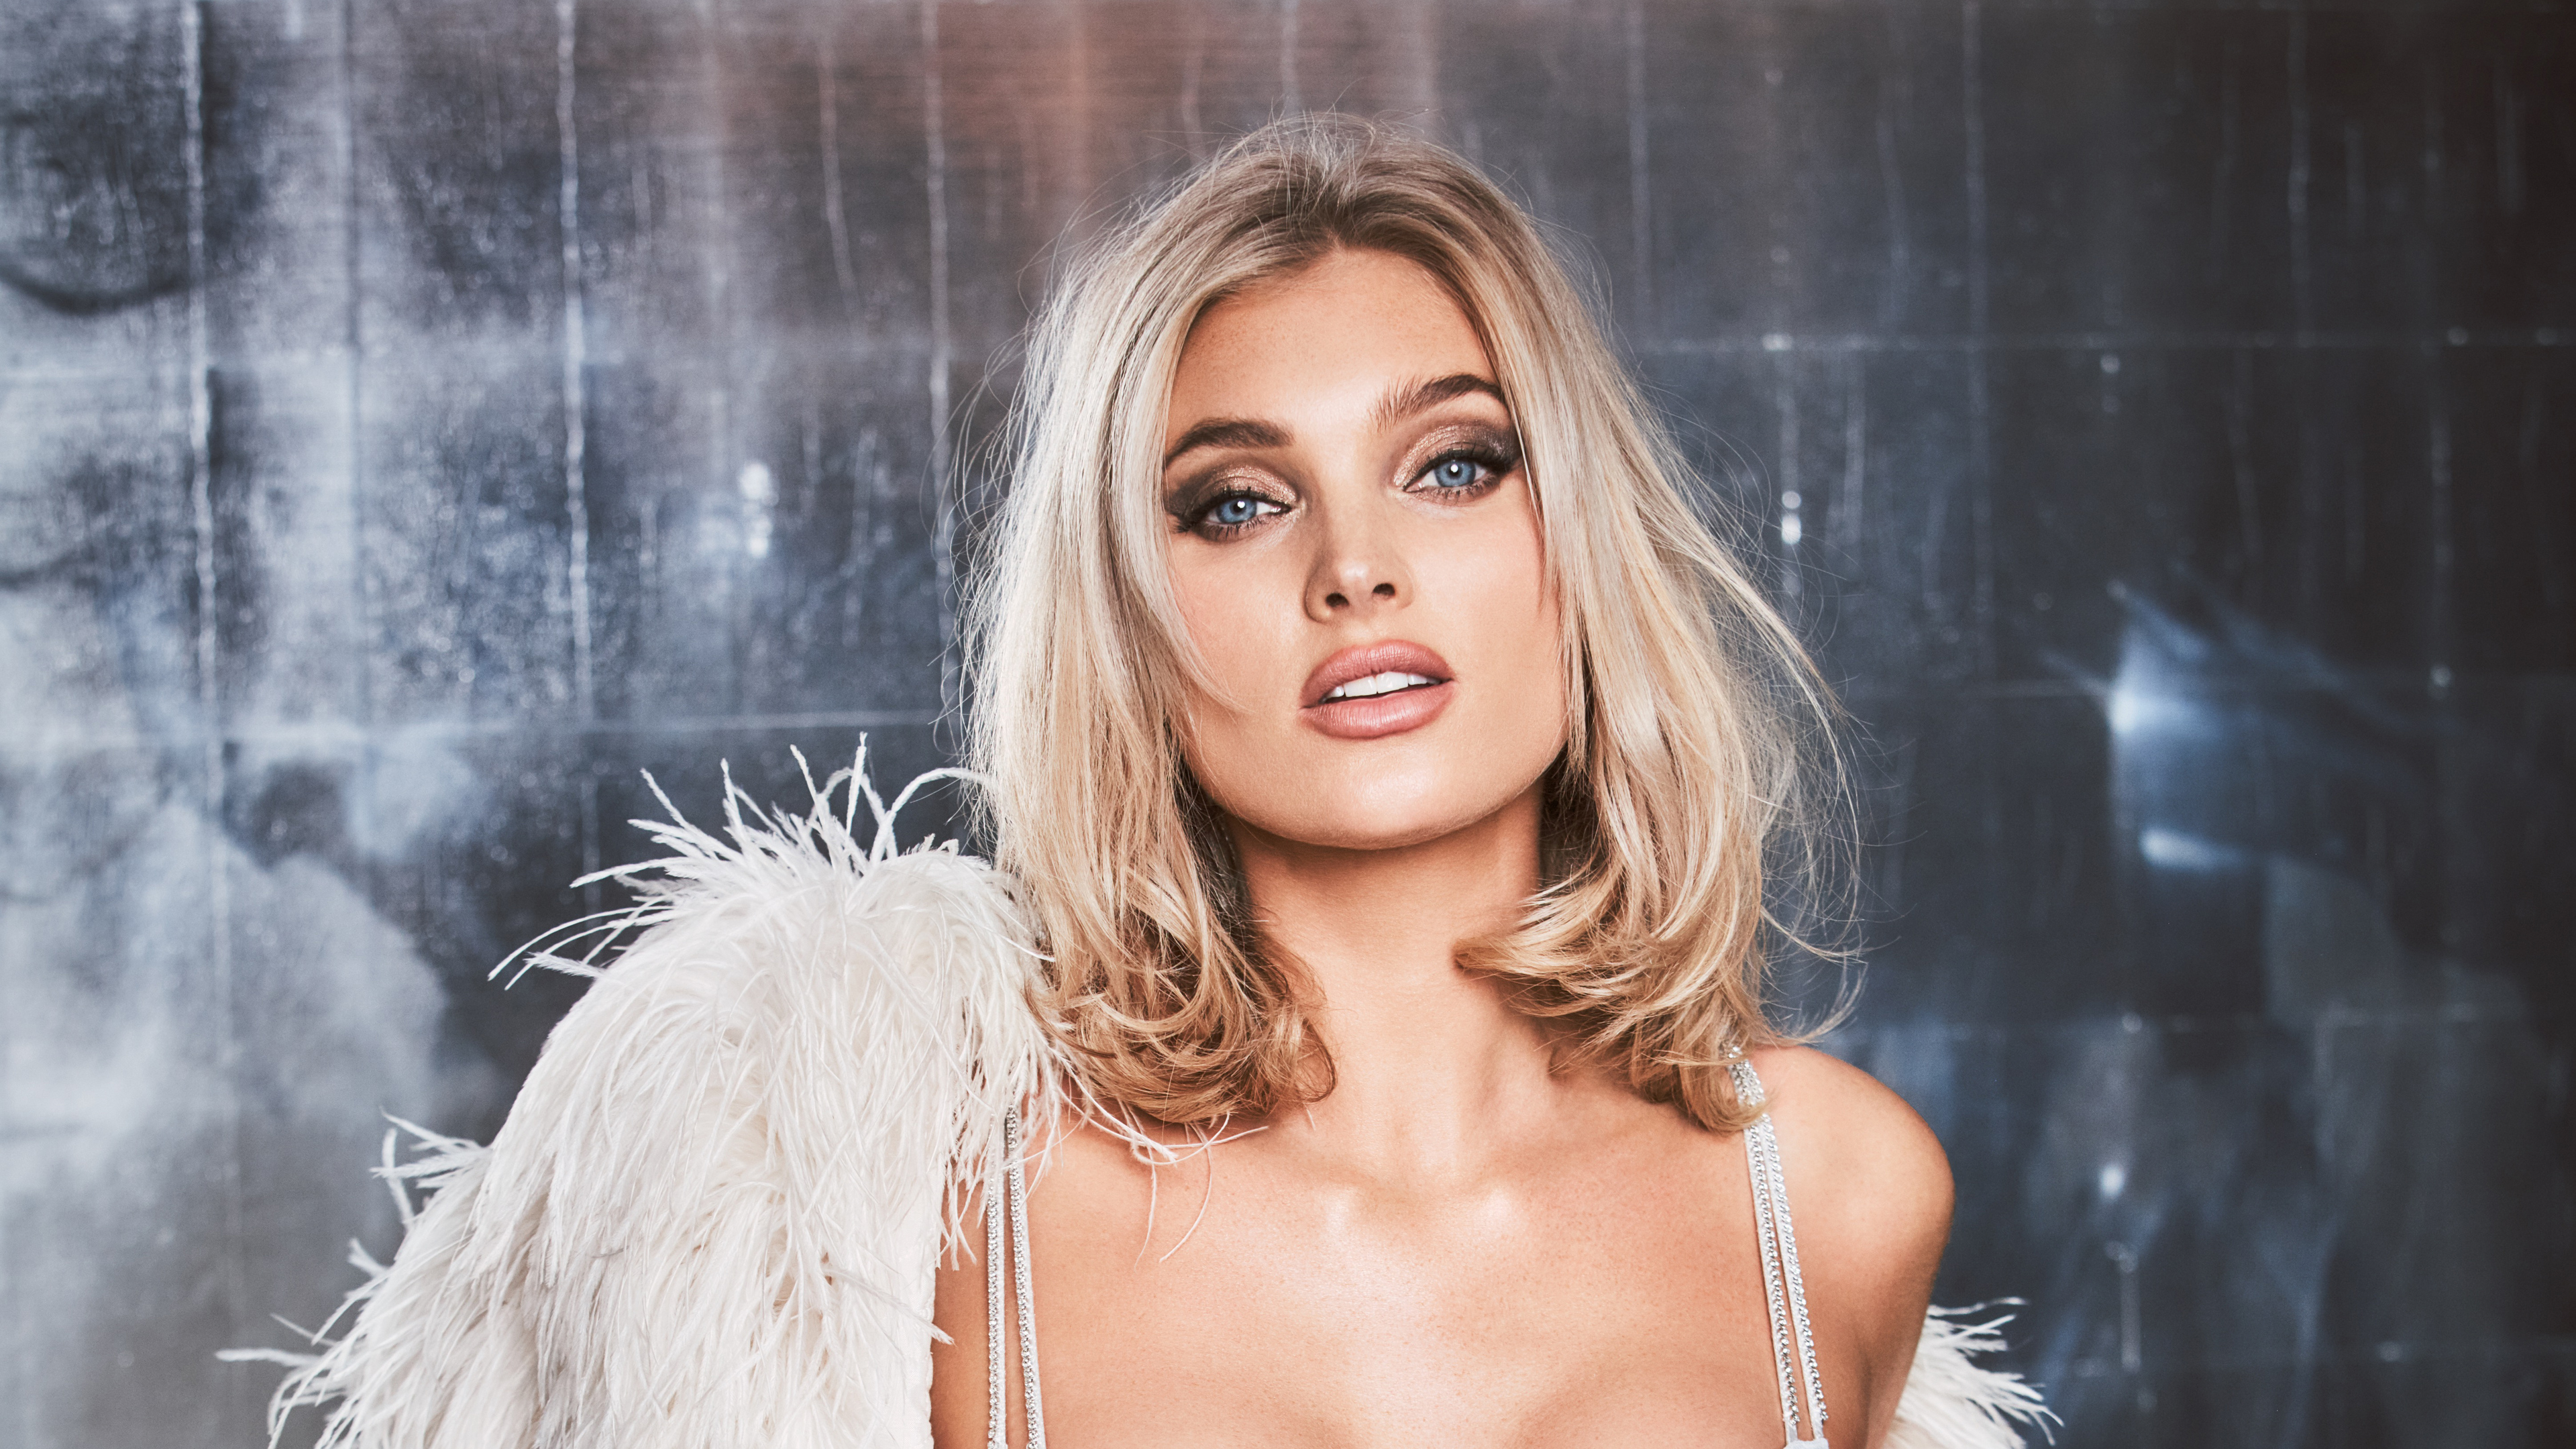 elsa hosk new 5k 1543104774 - Elsa Hosk New 5k - model wallpapers, hd-wallpapers, girls wallpapers, elsa hosk wallpapers, celebrities wallpapers, 5k wallpapers, 4k-wallpapers